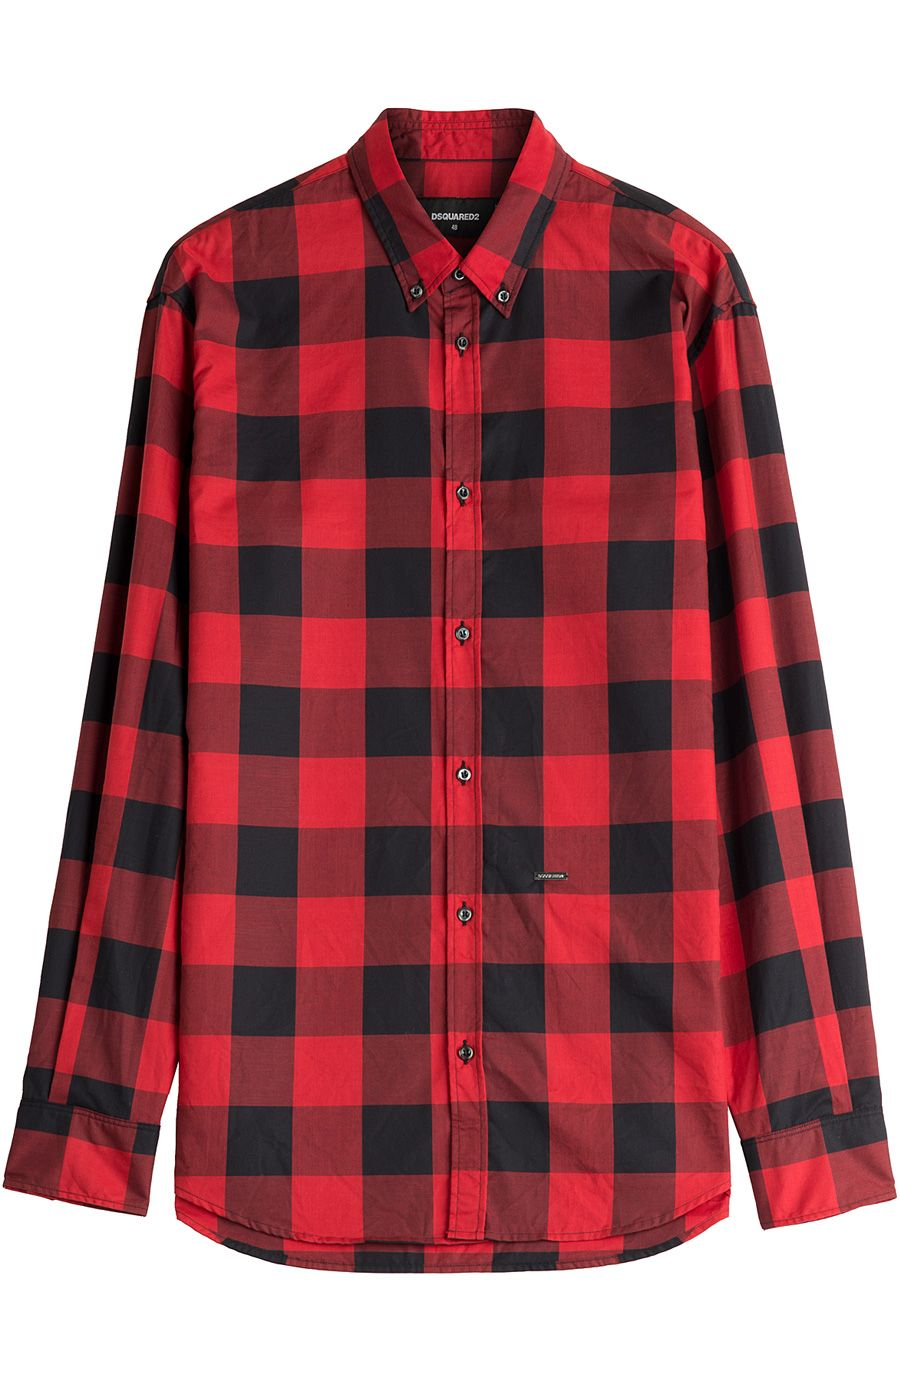 54c23dabb77 DSQUARED2 Printed Cotton Shirt.  dsquared2  cloth  casual long sleeves